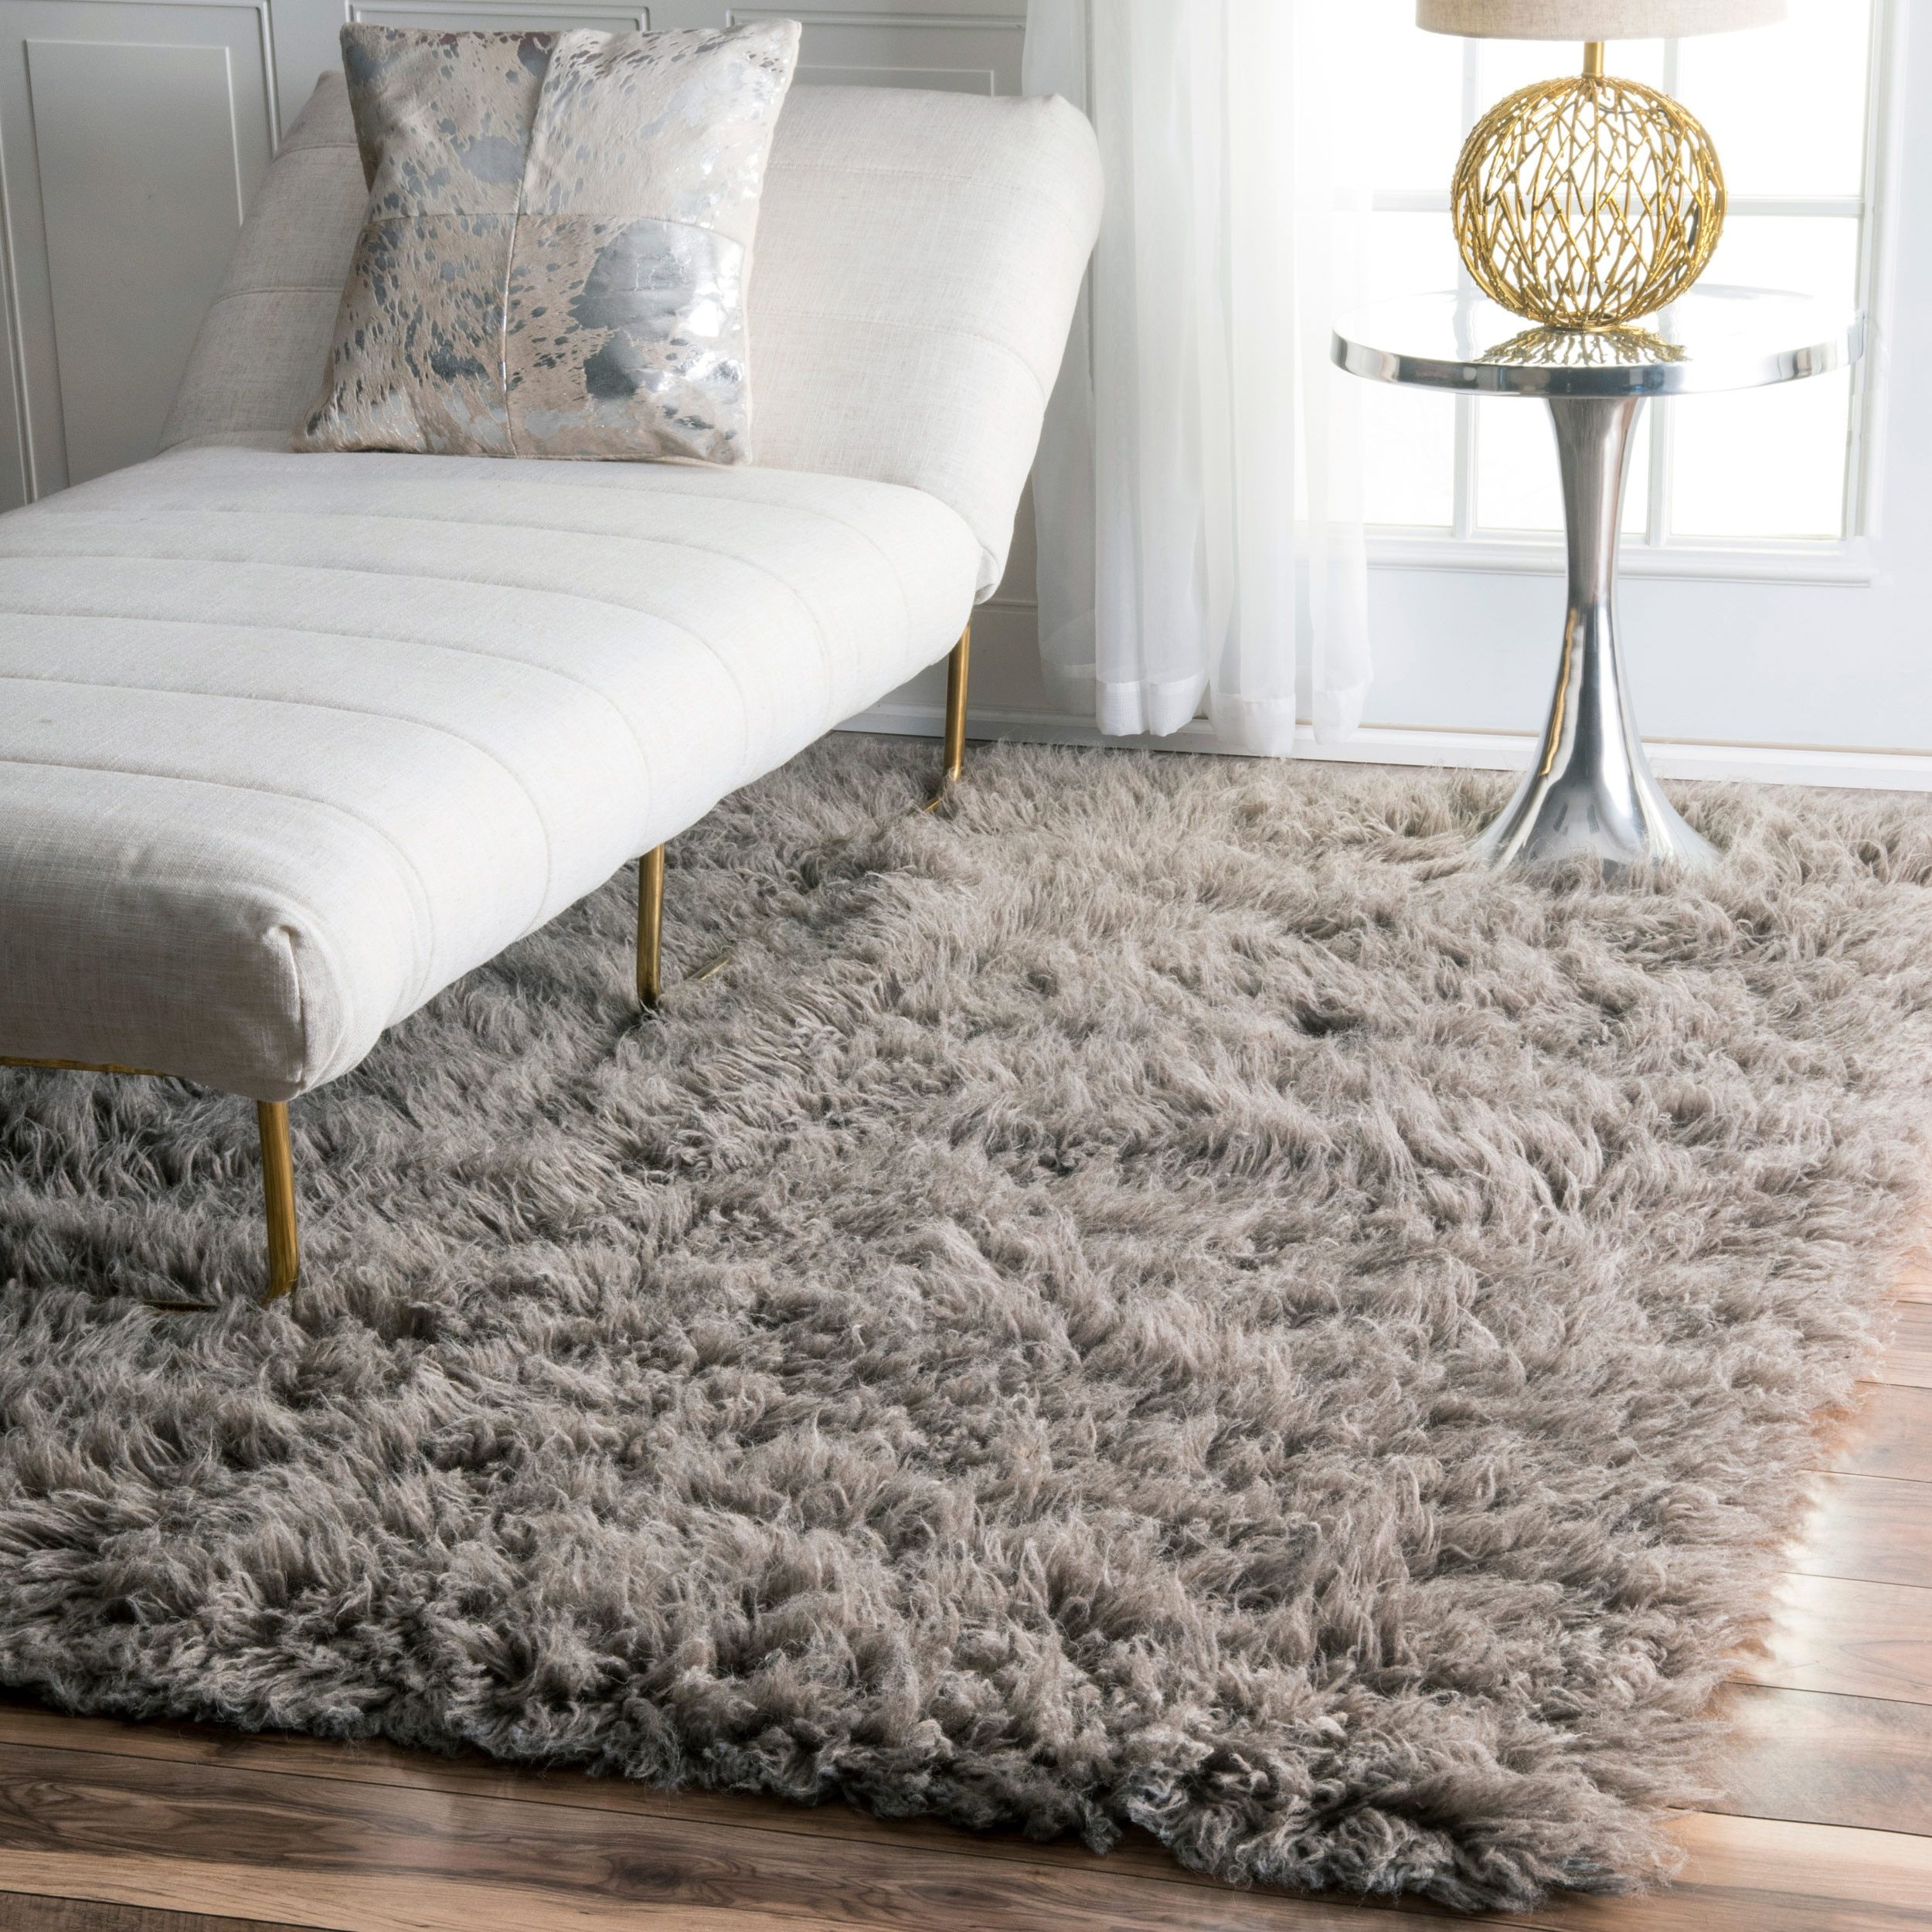 Affinity Home Collection Cozy Shag Area Rug (4u0027 X 6u0027)   18146341